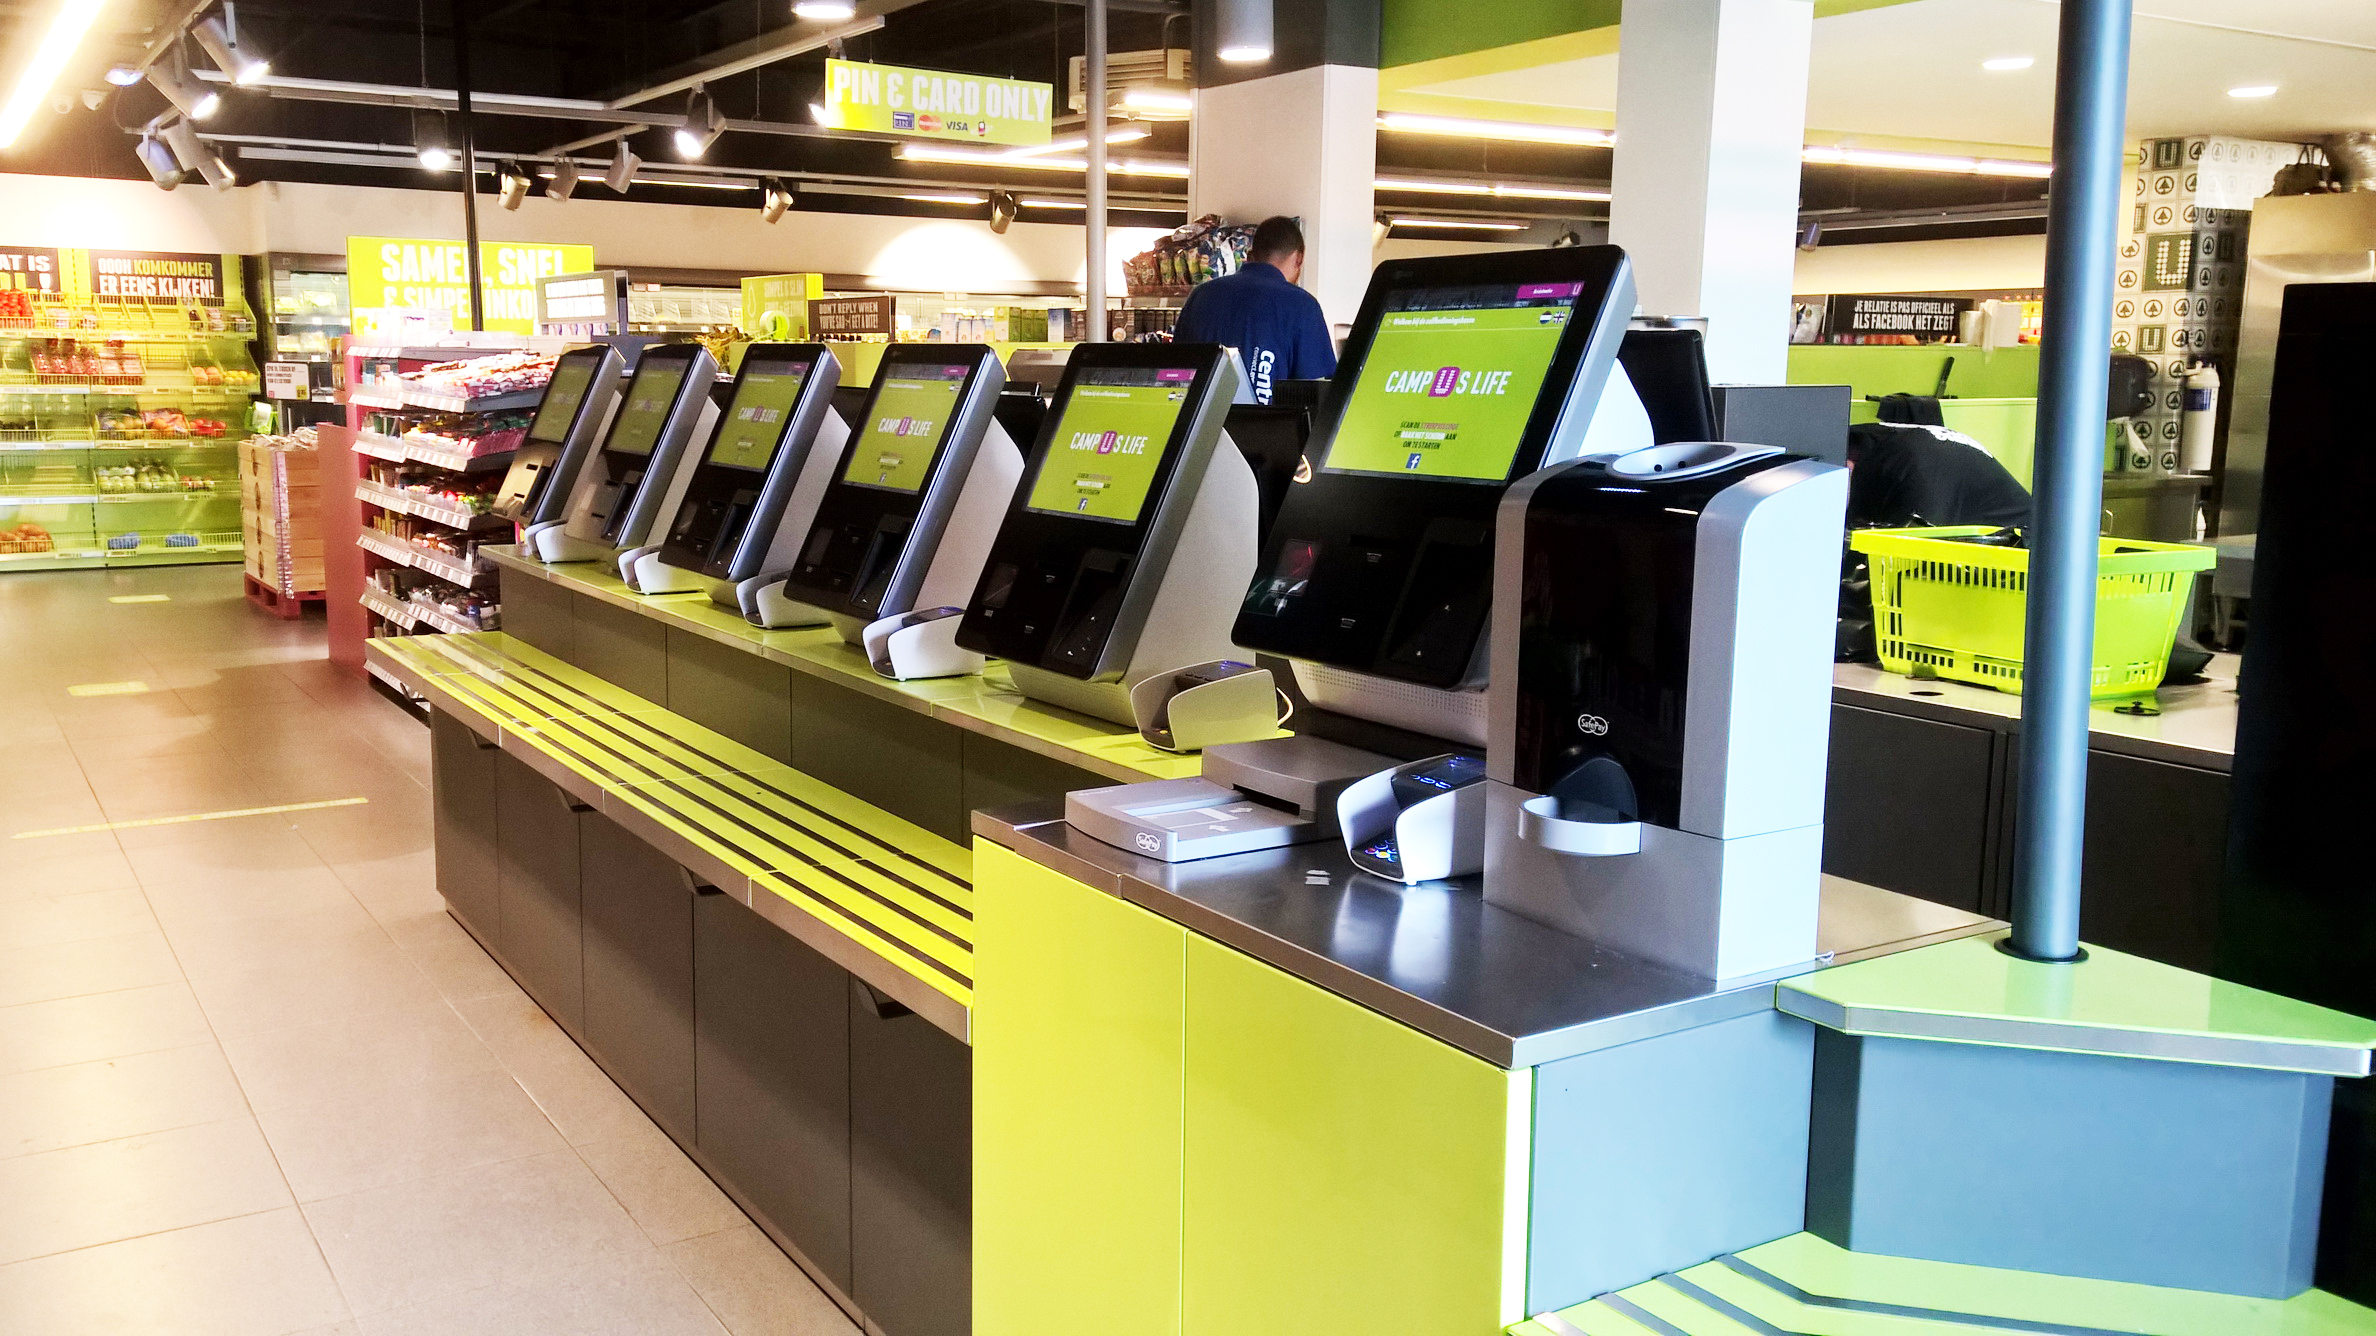 SafePay Casse di self checkout